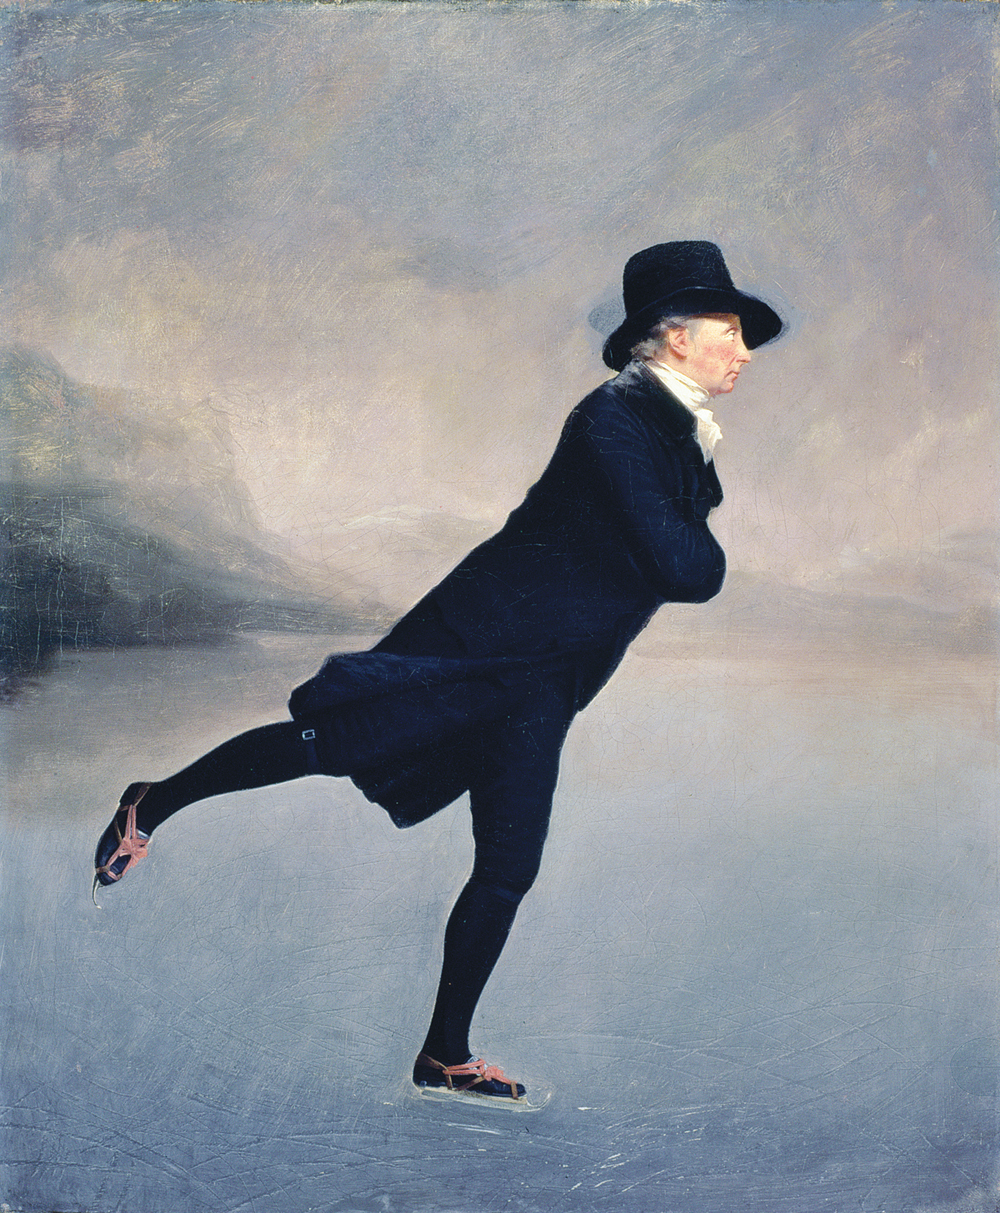 Rev. Robert Walker Skating on Duddingston Loch, by Sir Henry Raeburn, c. 1781. Scottish National Gallery, Edinburgh, Scotland.